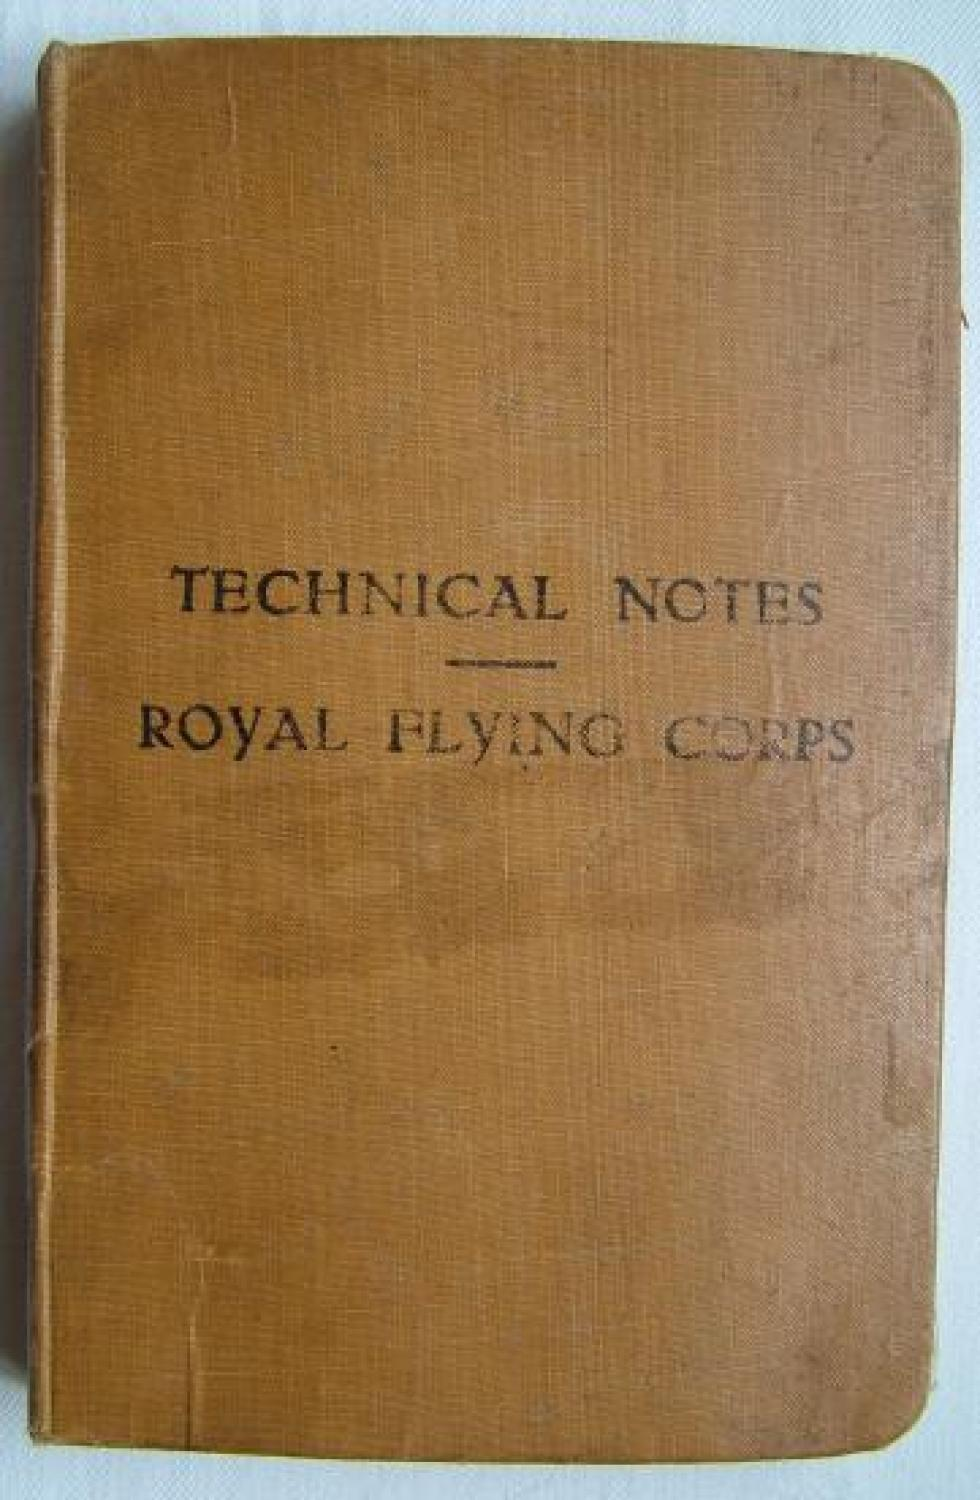 Royal Flying Corps Technical Notes, 1916